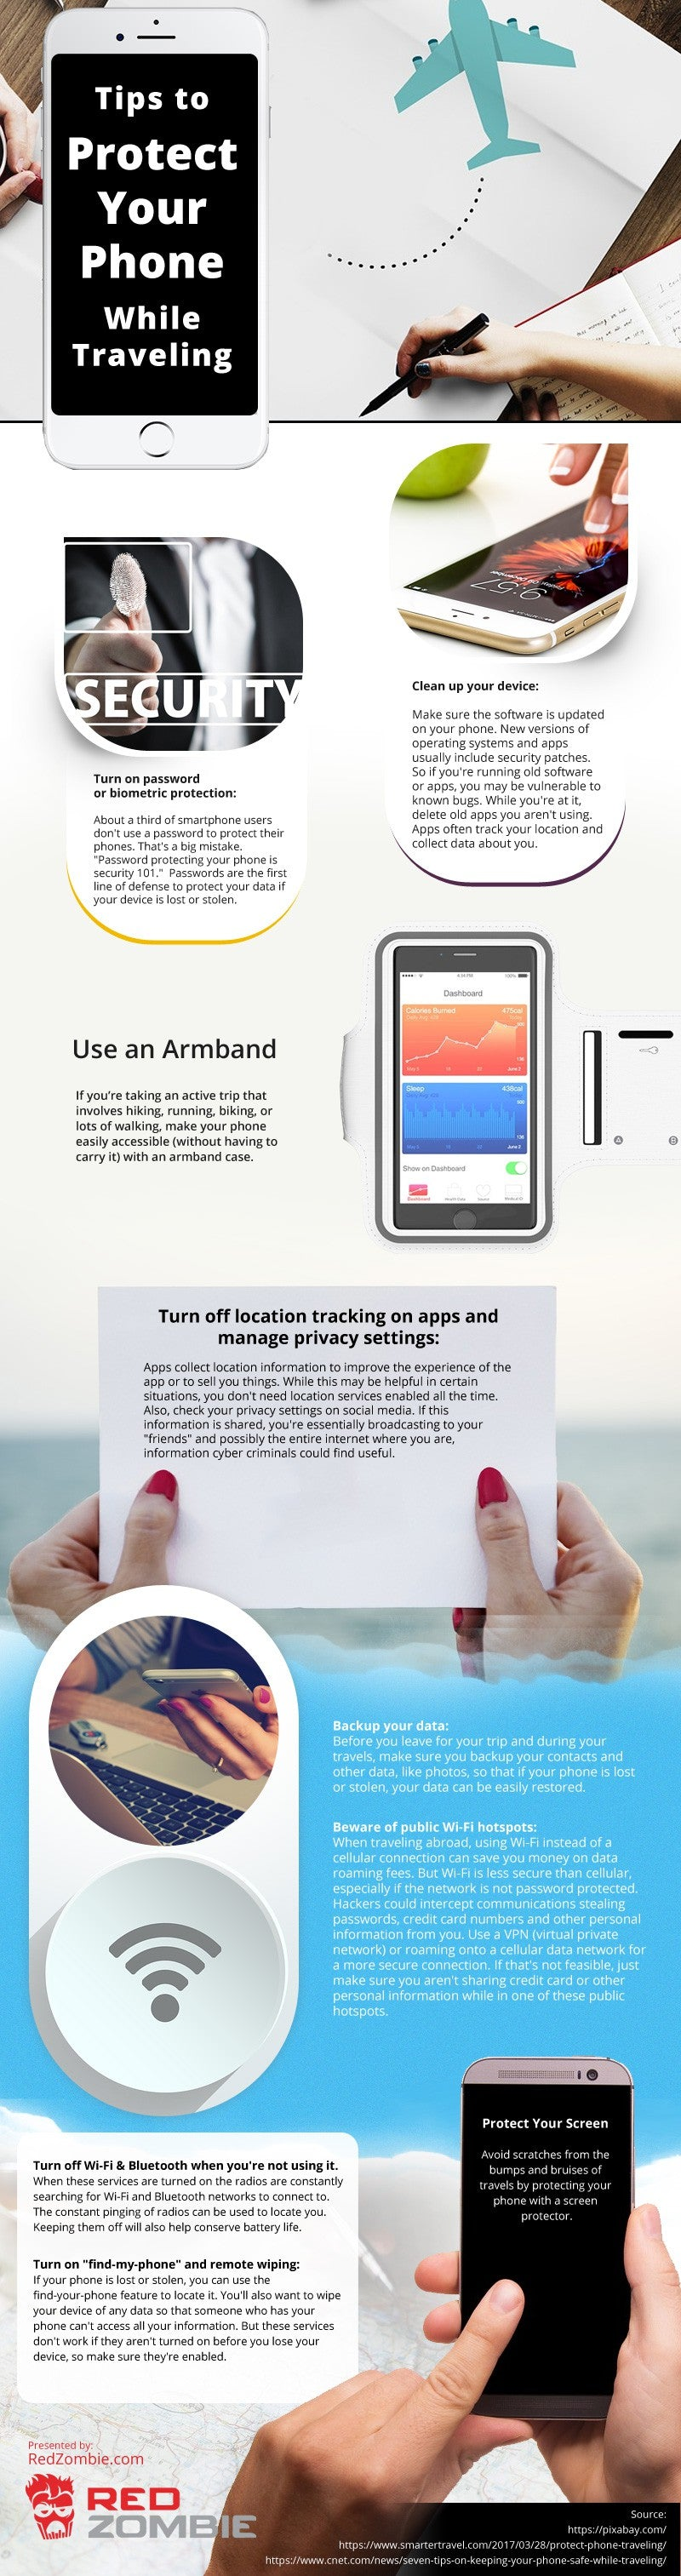 Tips to Protect Your Phone While Traveling [infographic]